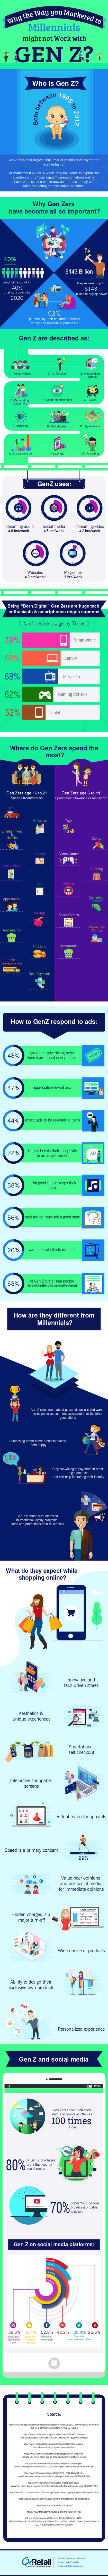 The Ultimate Guide to Generation Z Marketing Strategies